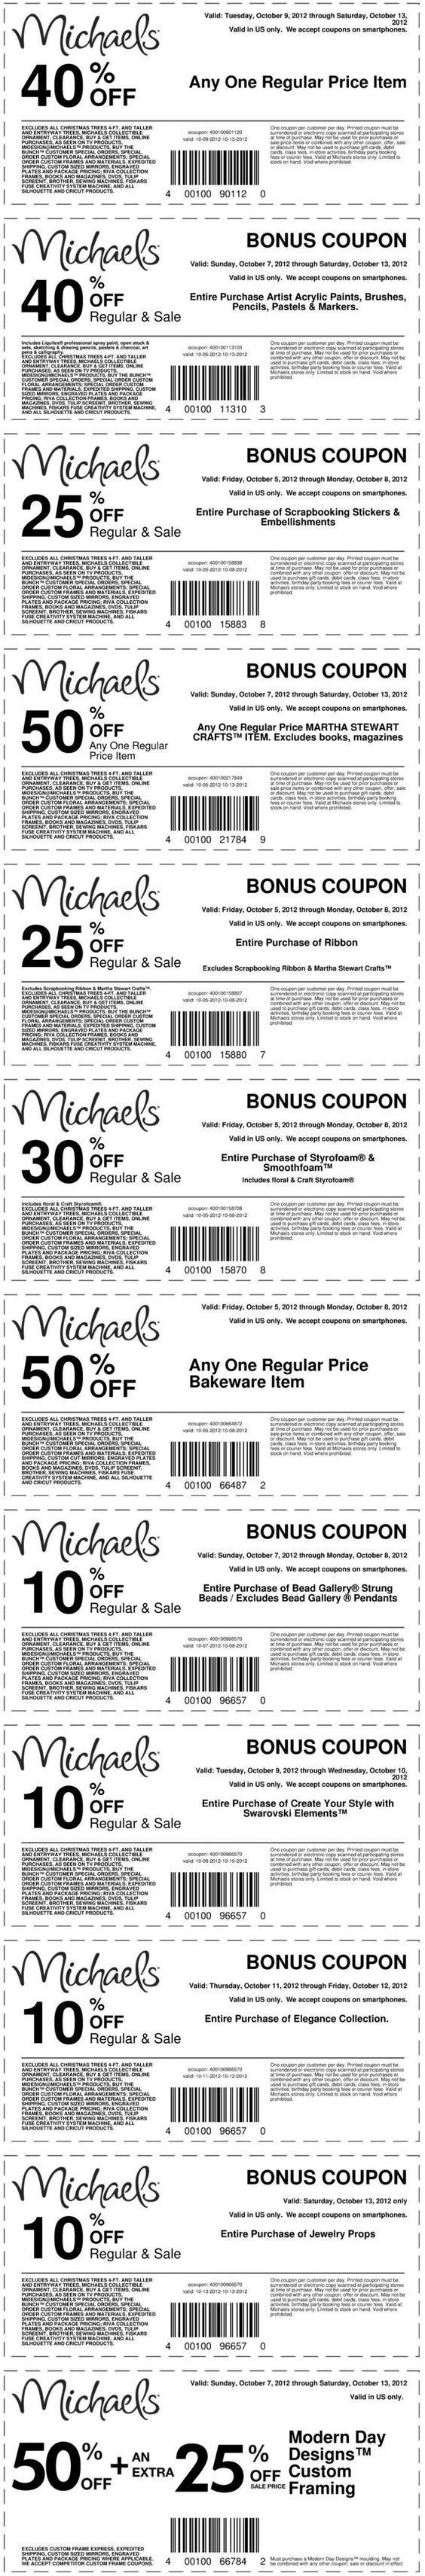 Hobby lobby coupon 40 off entire purchase - Pinned January 17th 20 Off A Single Small Appliance At Best Buy Or Online Via Promo Code Winter20 Coupon Via The Coupons App The Coupons App